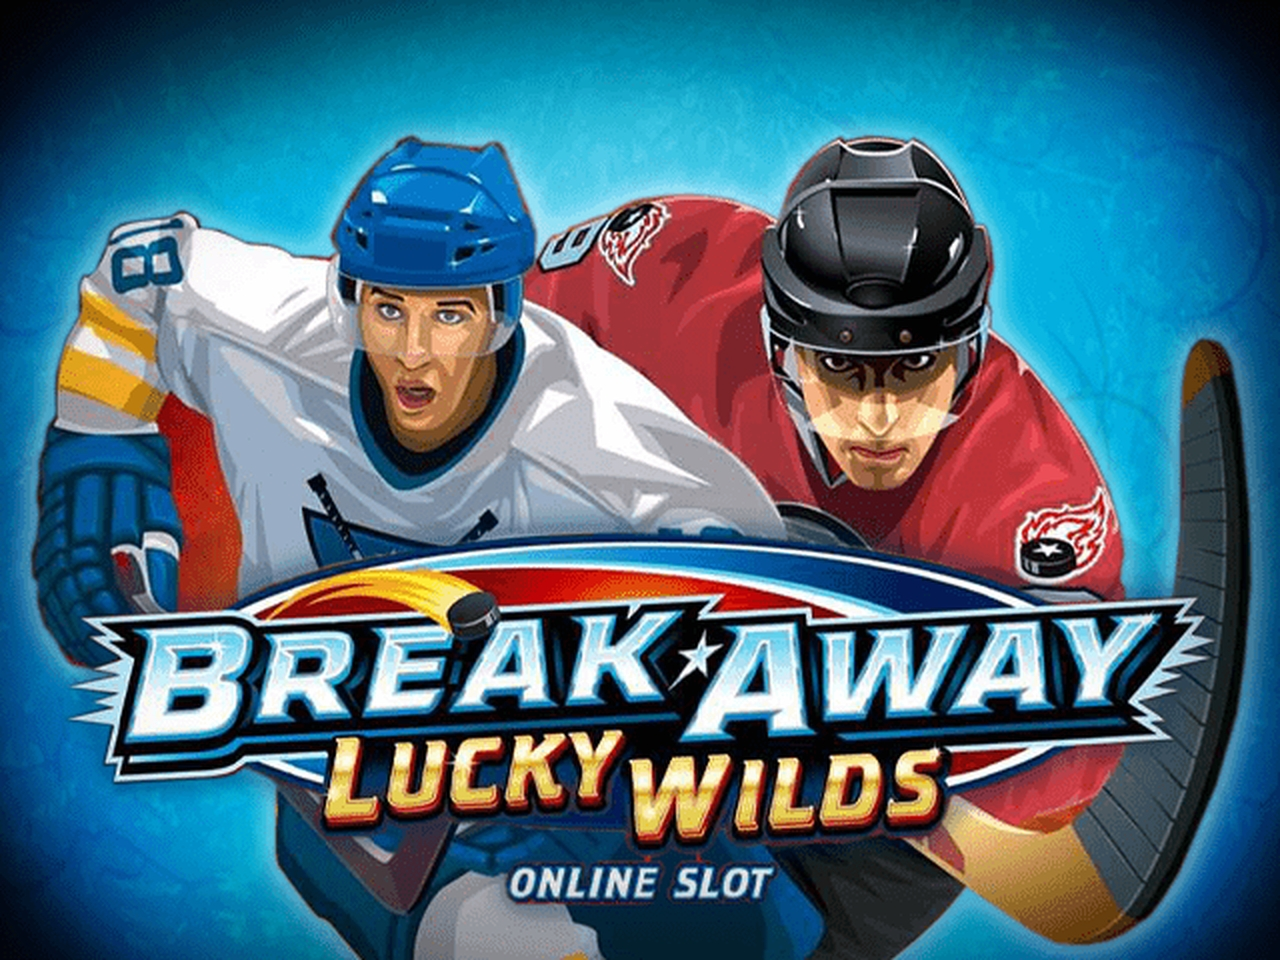 The Break Away Lucky Wilds Online Slot Demo Game by Stormcraft Studios